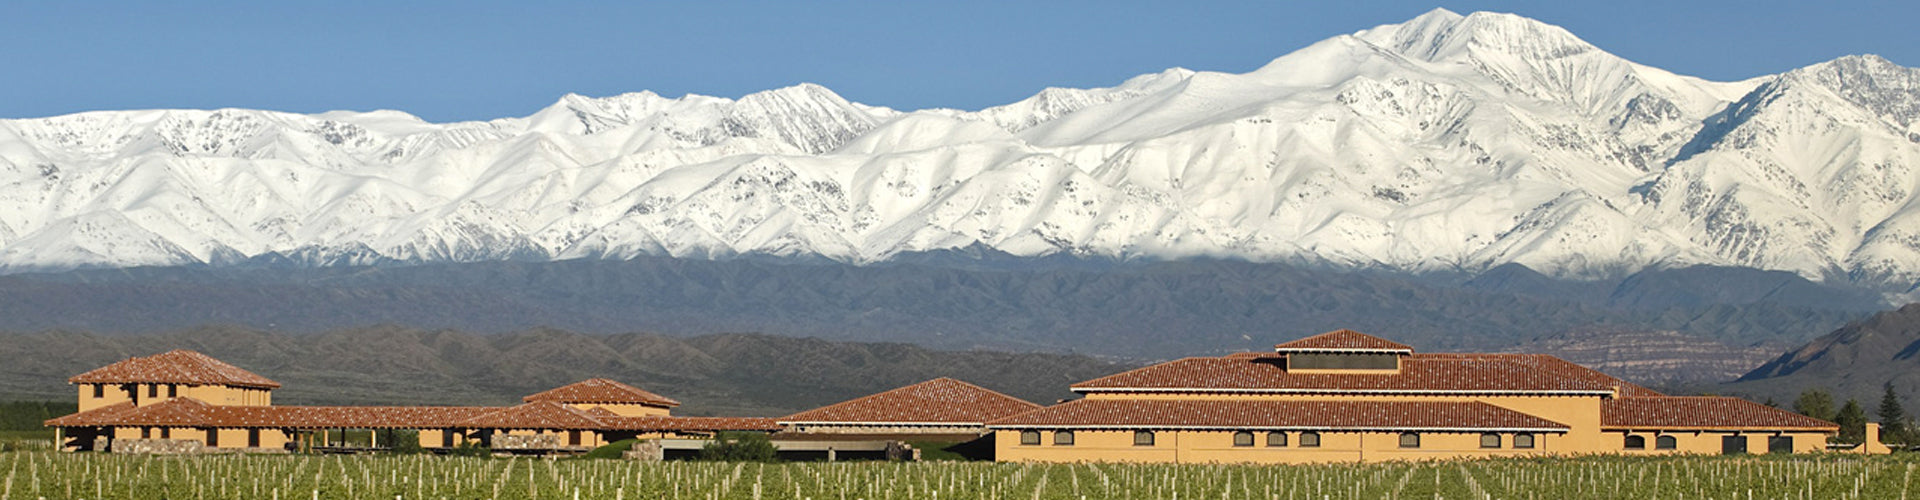 Finca Decero Winery in Mendoza